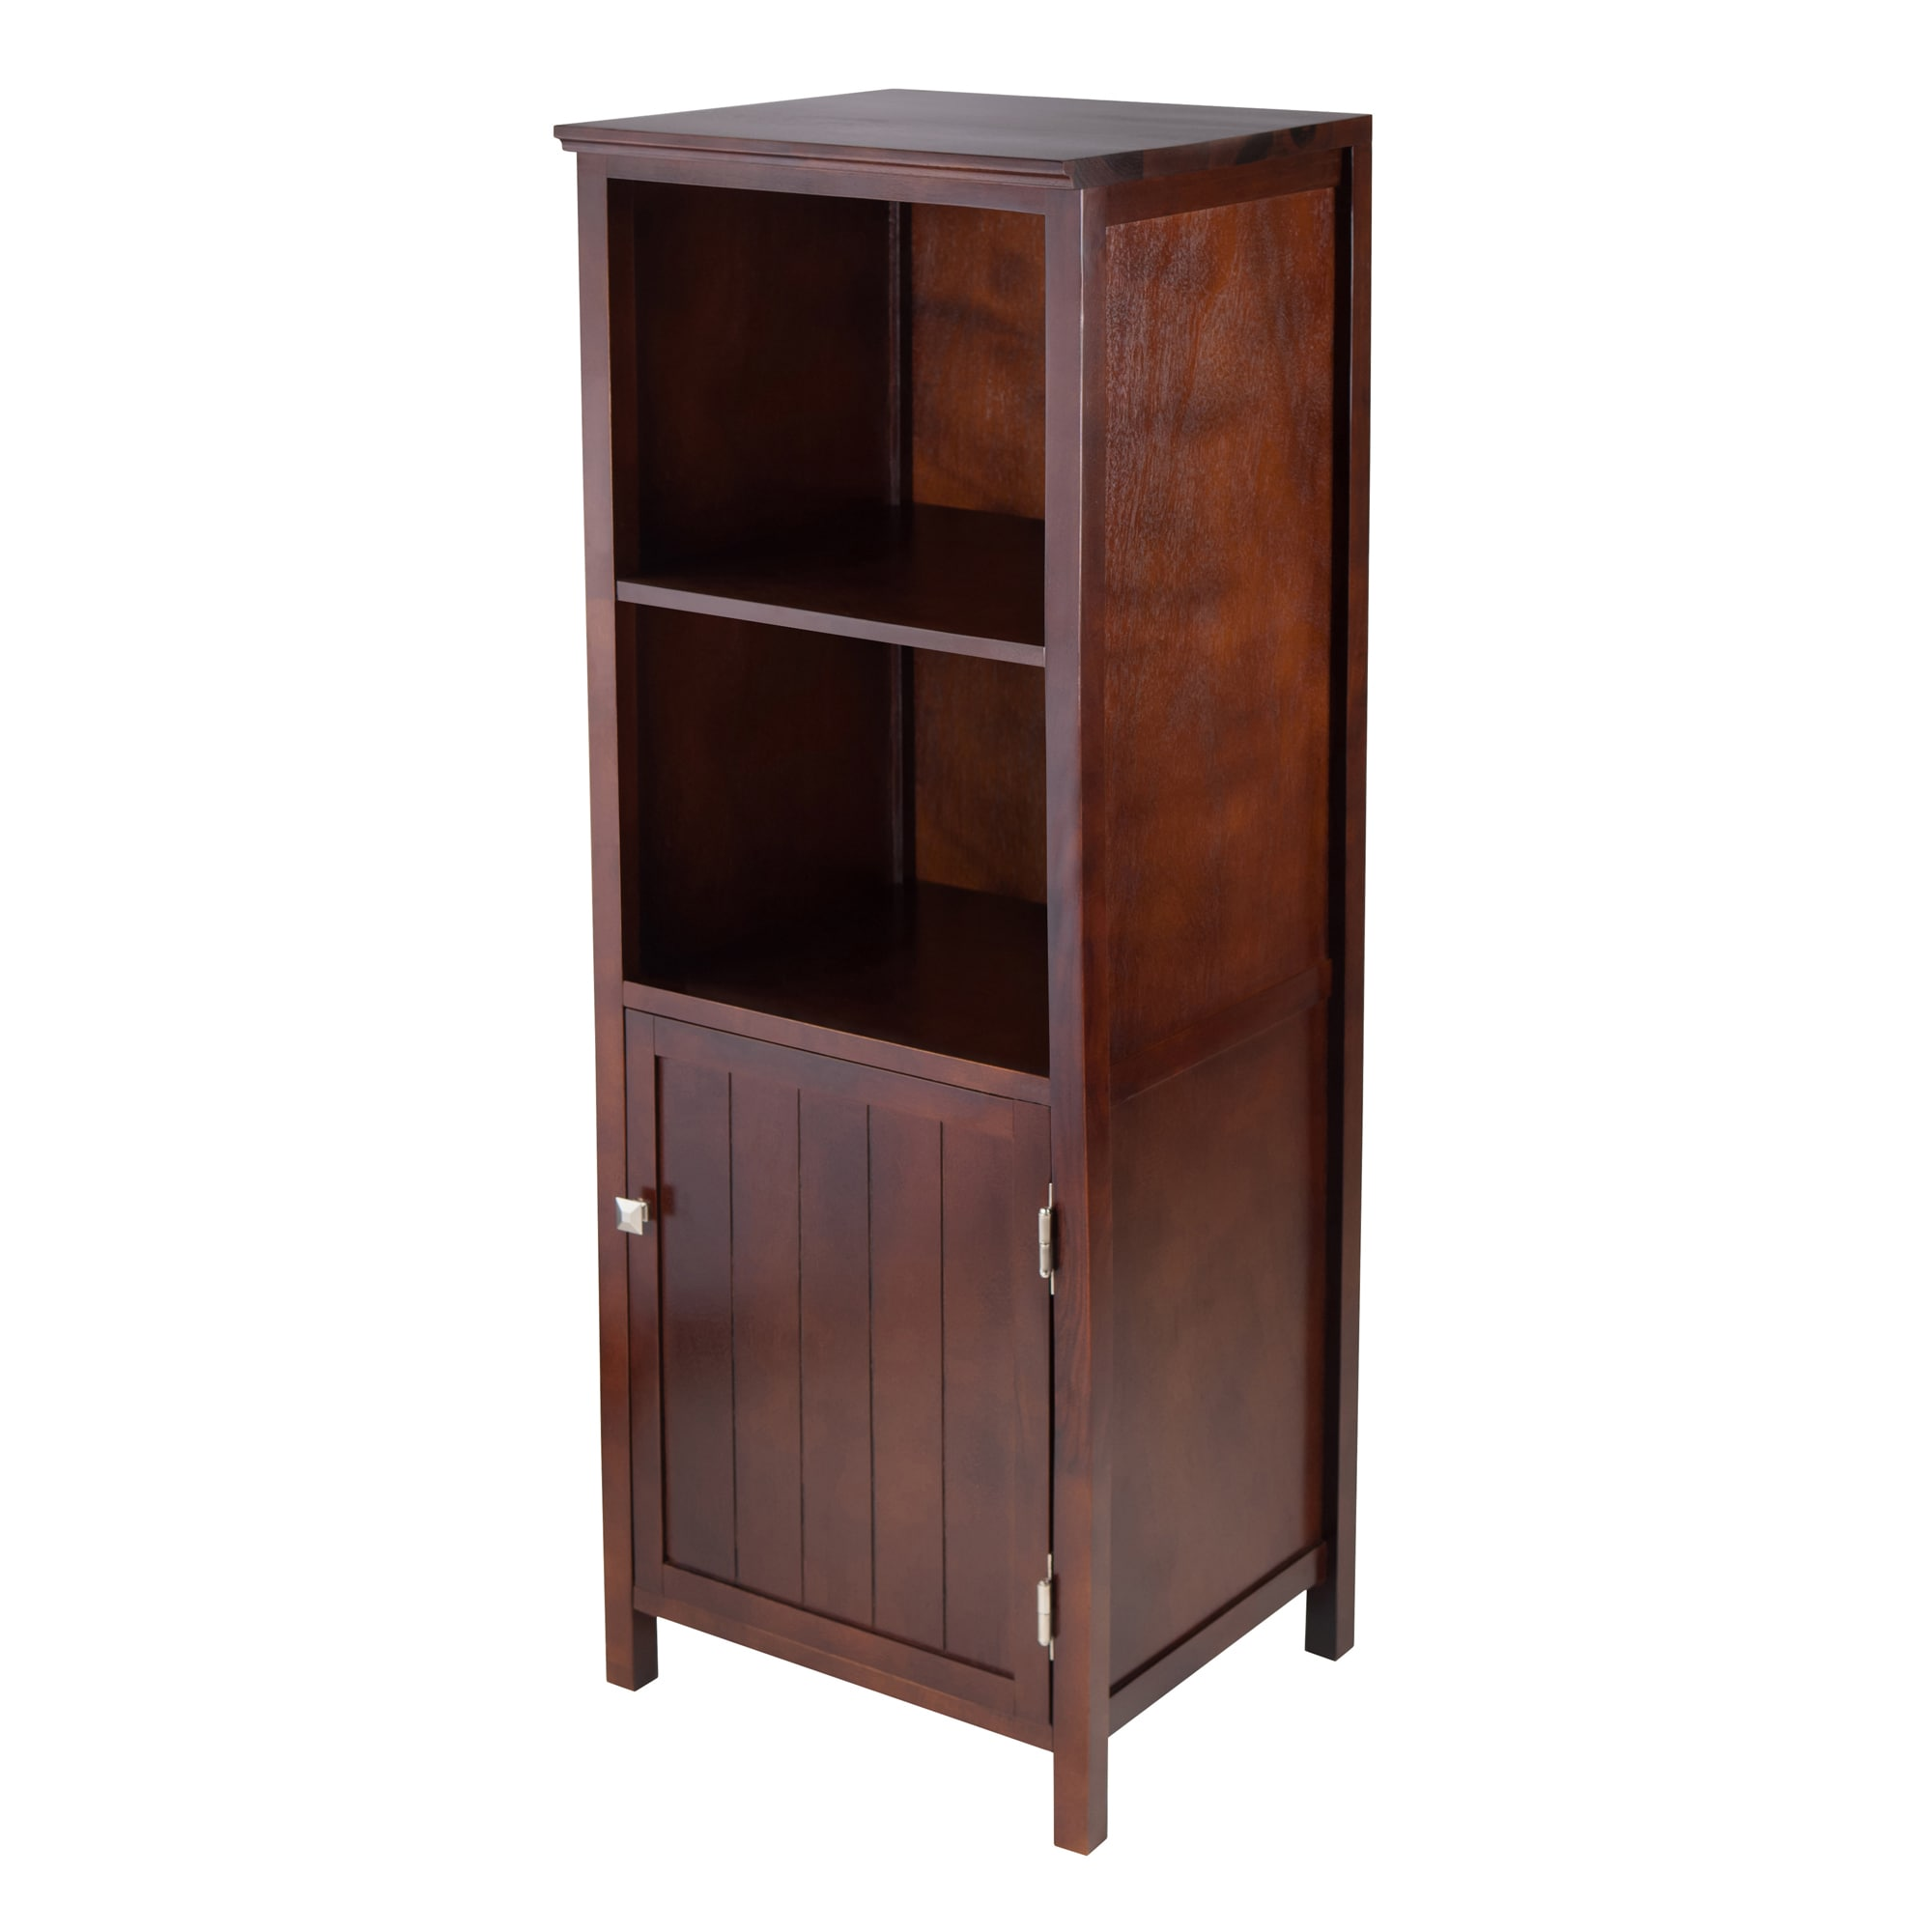 Brooke Wood Jelly Cupboard with 2 Shelves and Door (Antiq...